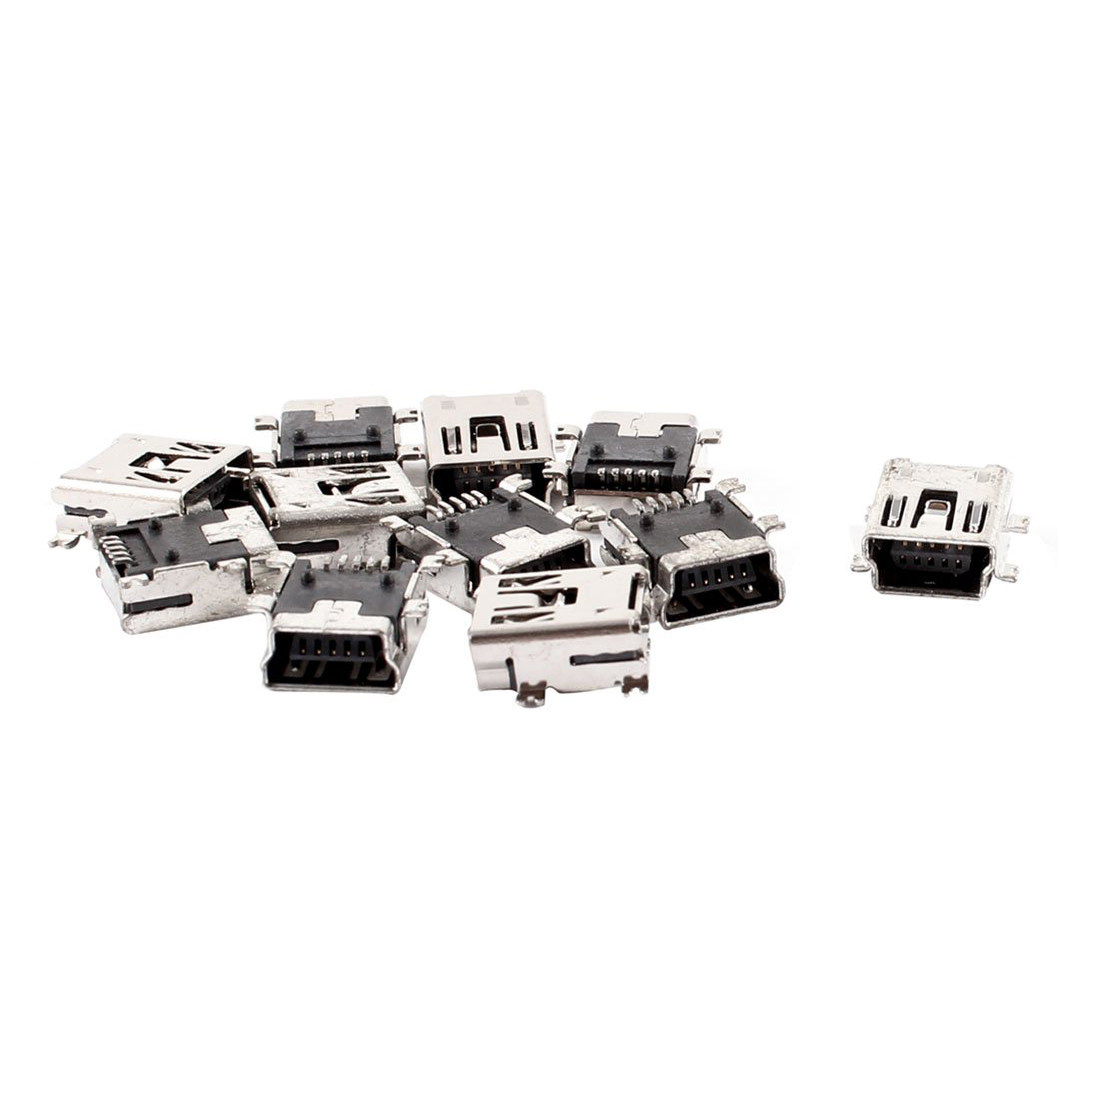 Mylb Replacement Mini Usb Type B Female 5 Pin Pcb Board Mount Jack Charger Connector 10 Pcs In